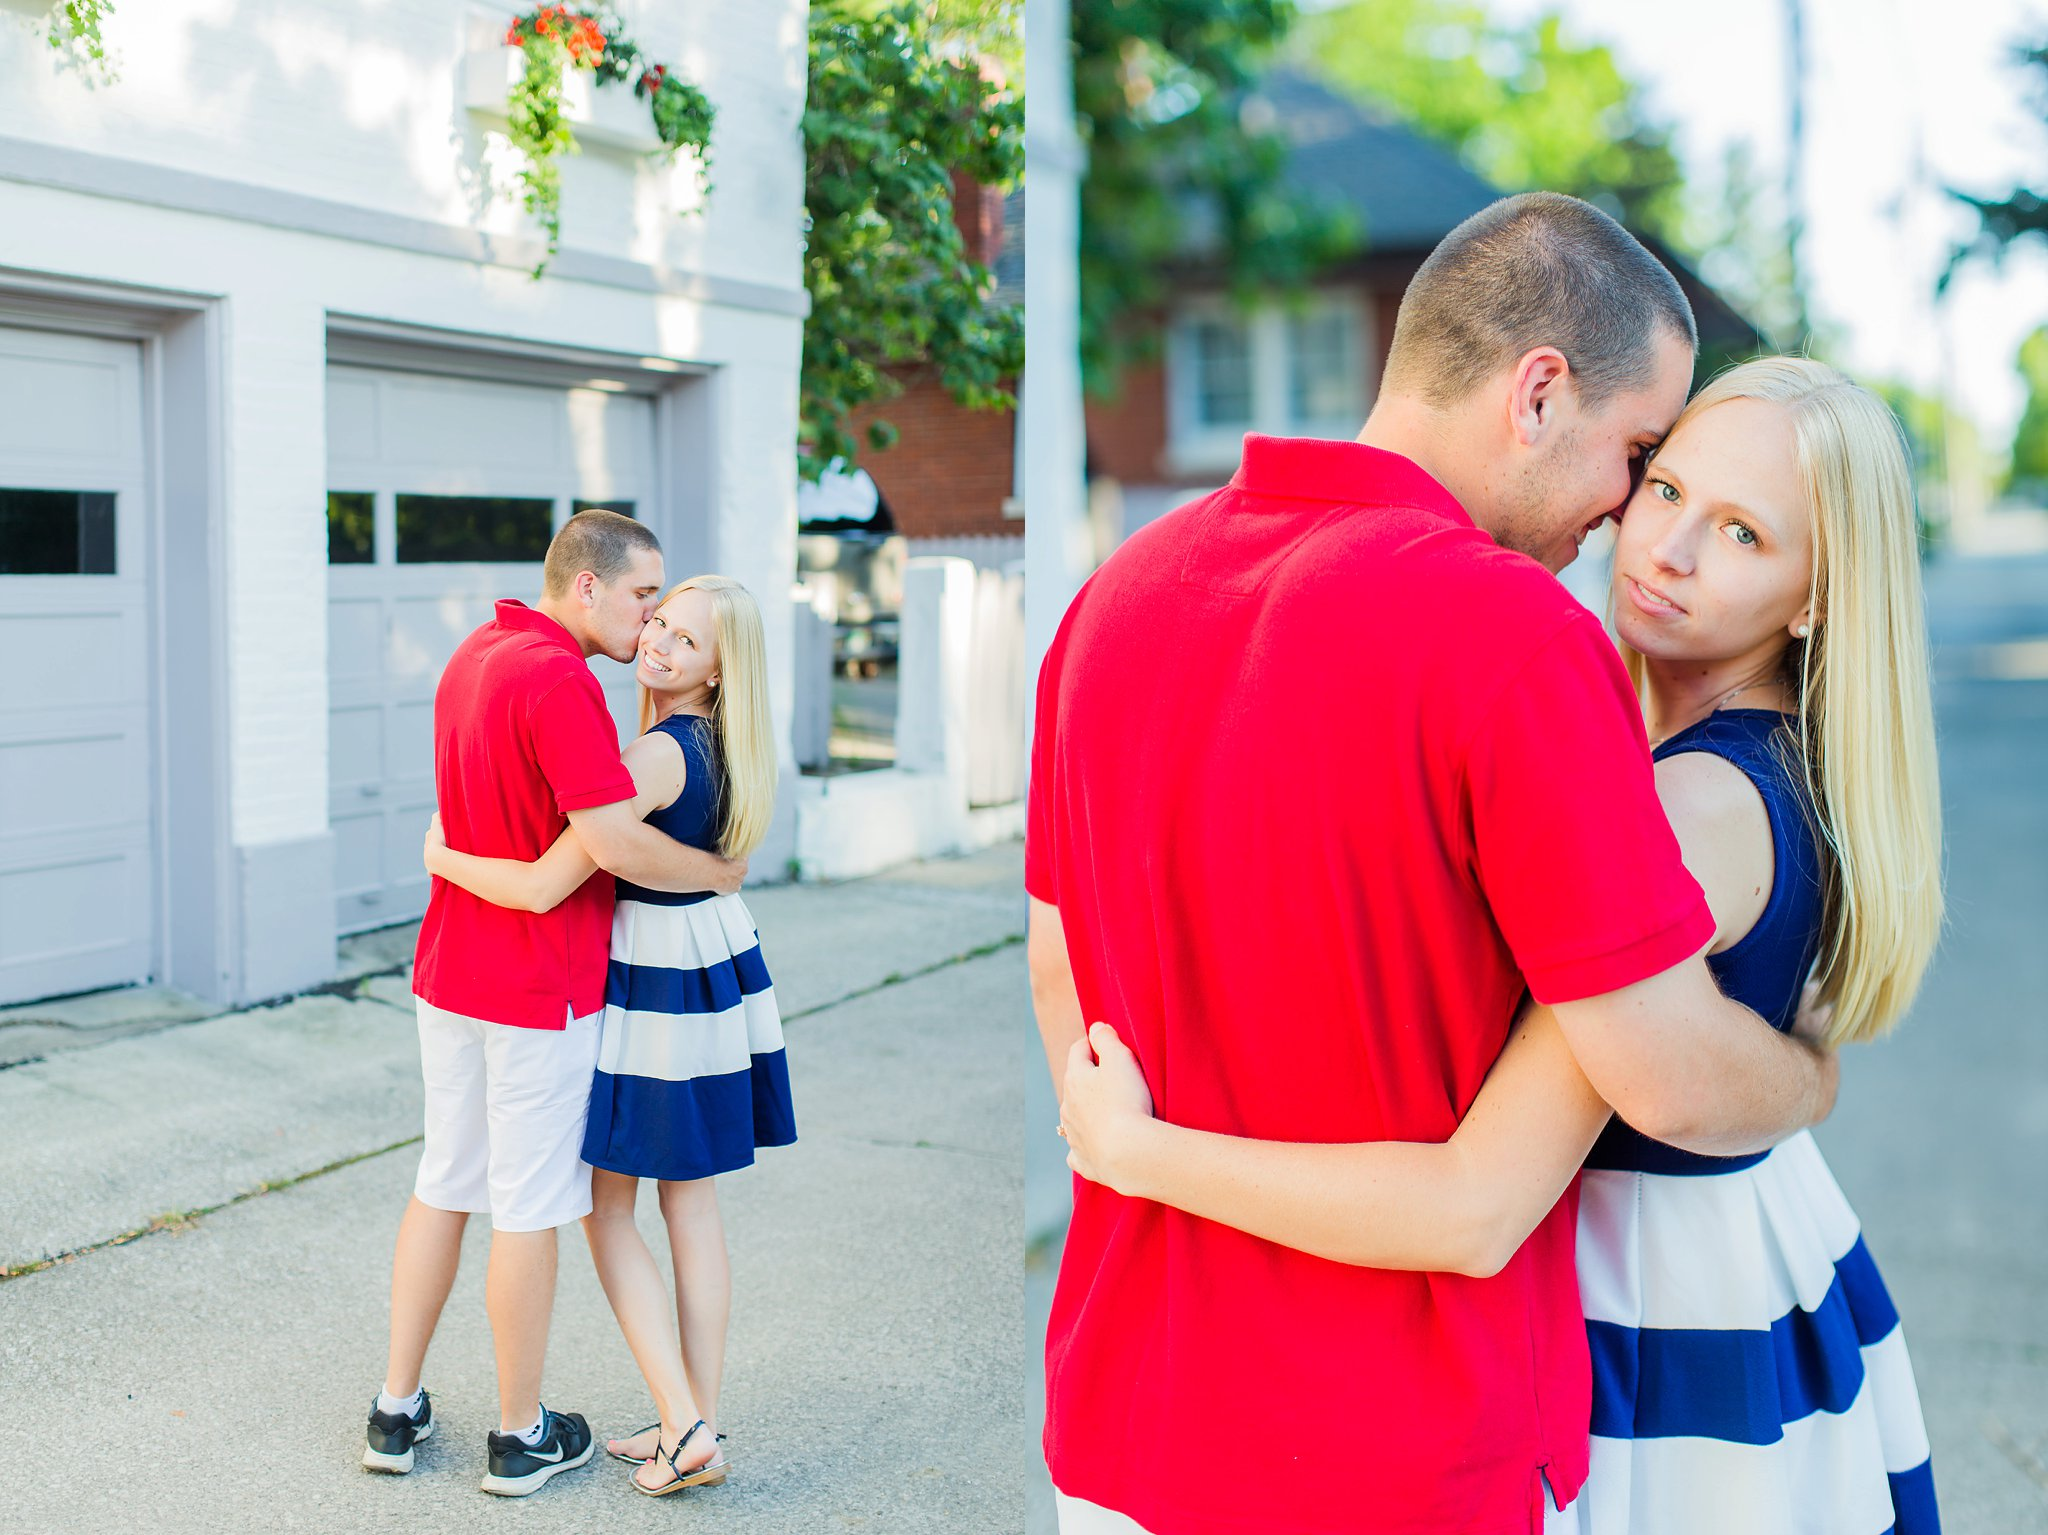 Silver Lake Engagement Photos Michigan Wedding Photographer Megan Kelsey Photography-9532.jpg